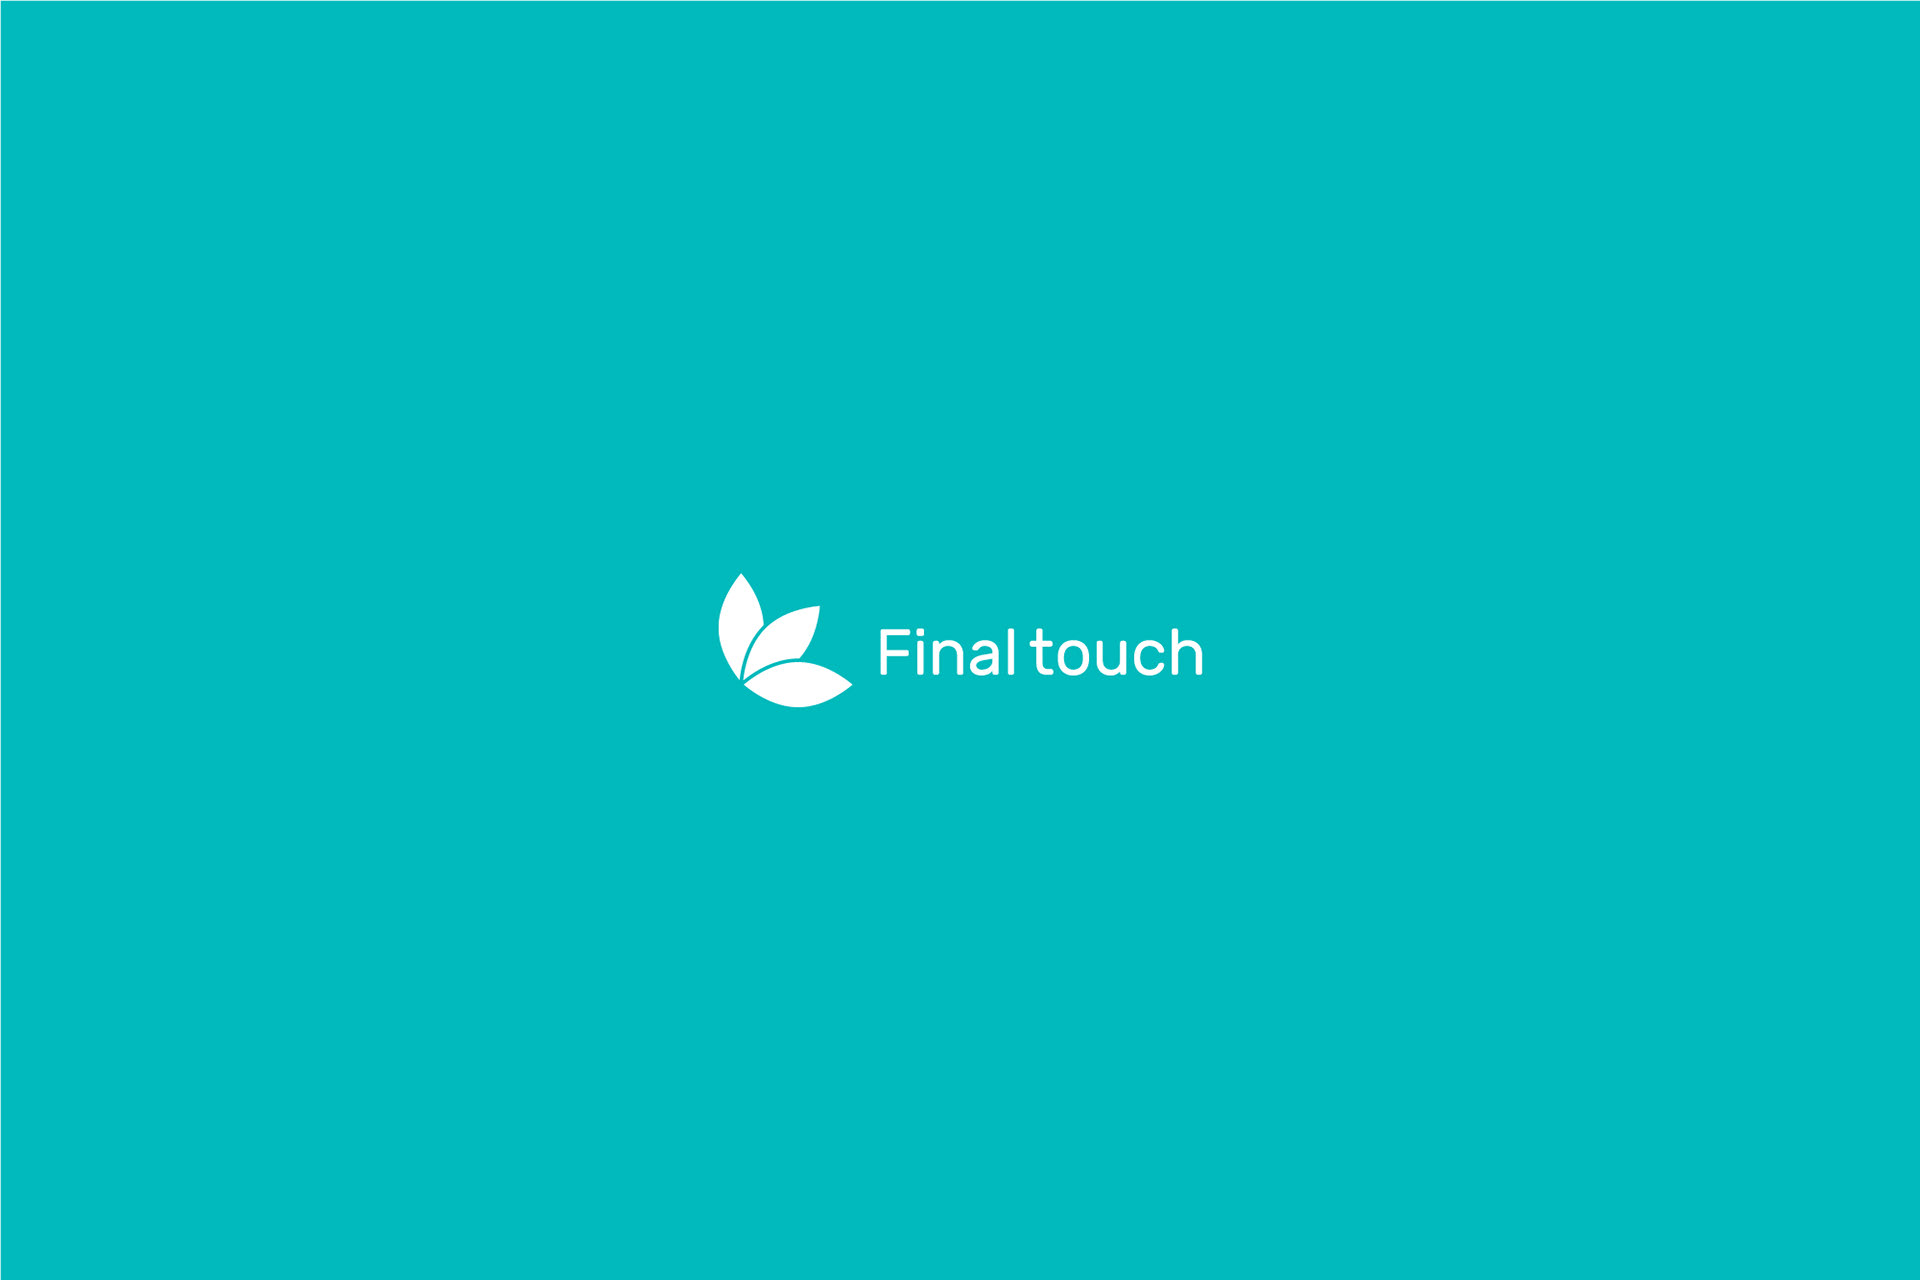 Ahmed Qurany - Final Touch